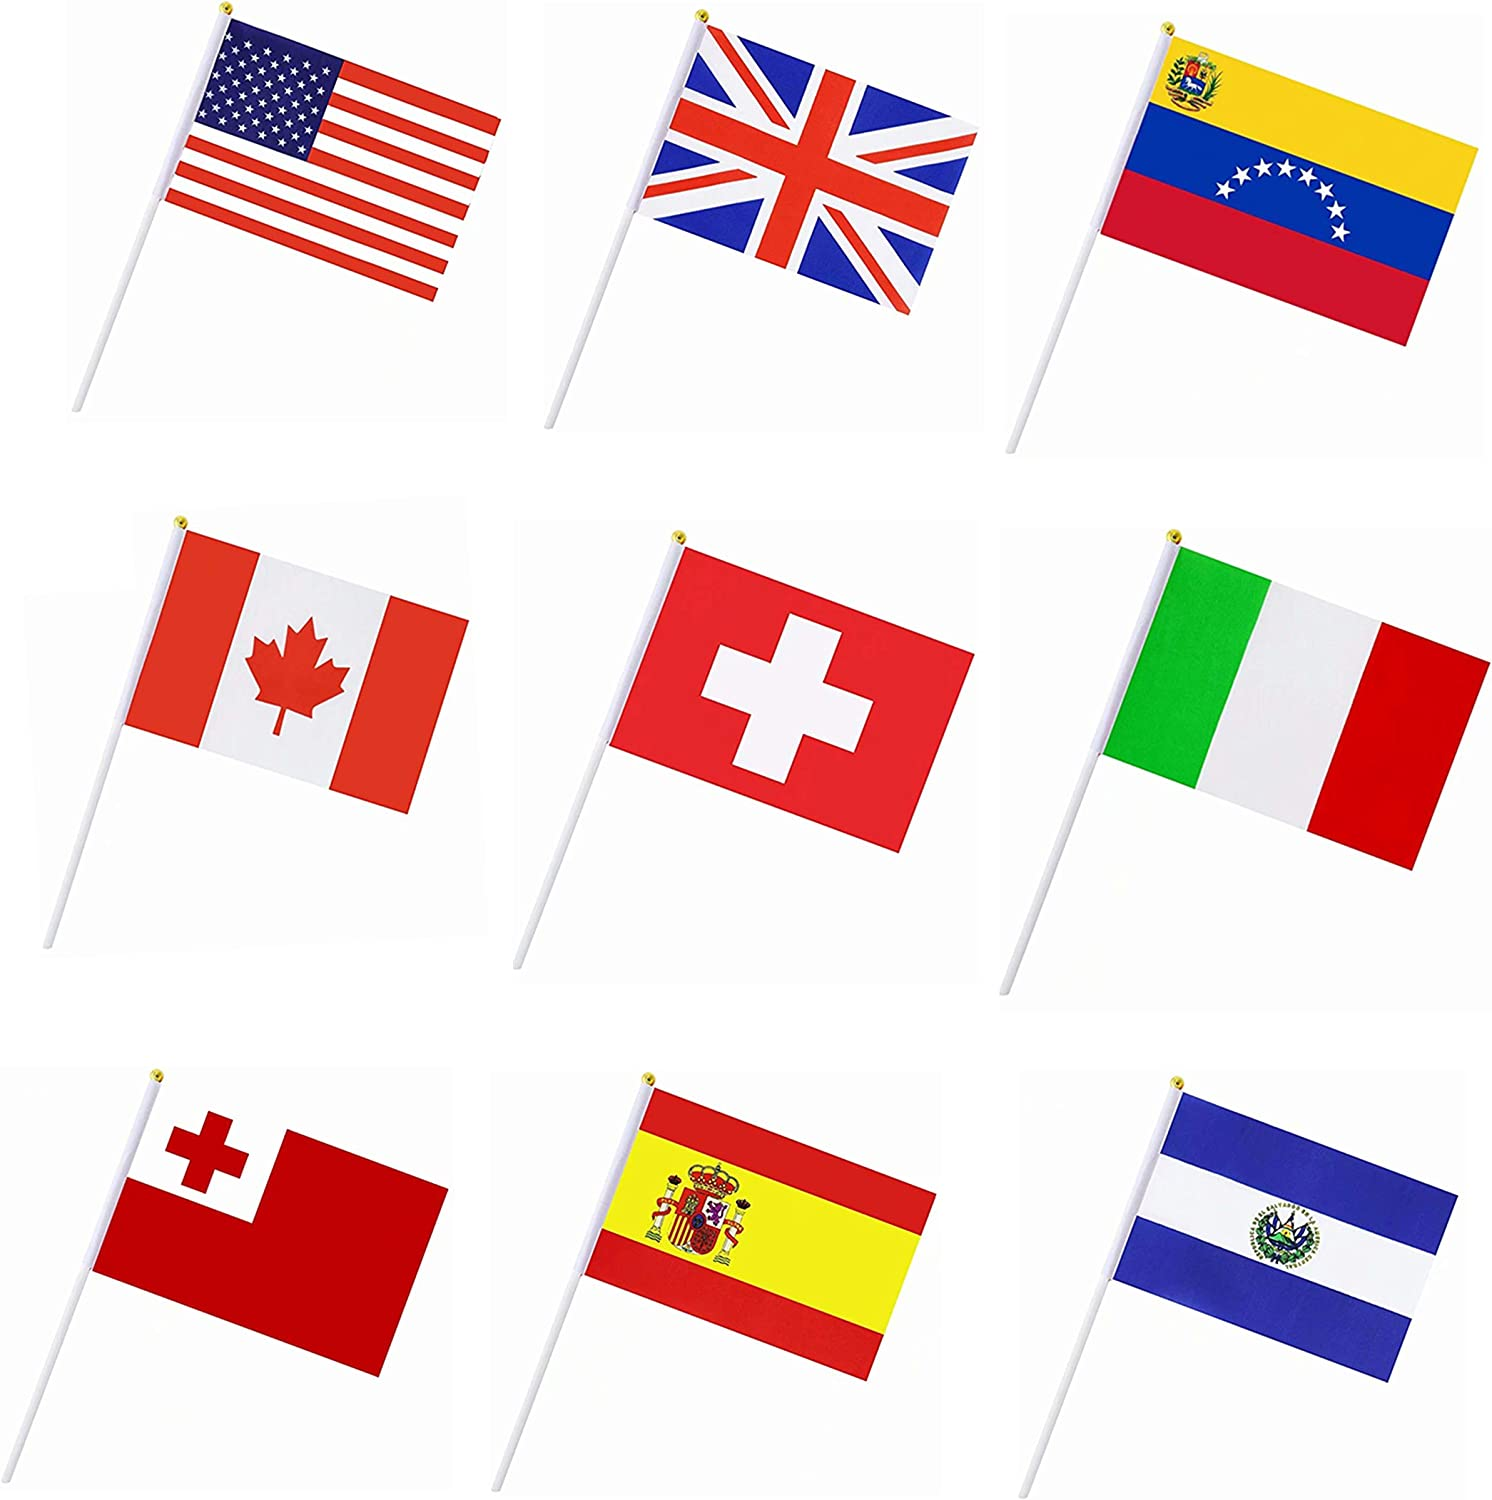 50 Countries Hand Held Stick Flags Banners,Small Mini International World Country Party Decorations for Grand Opening,Olympics,Sports Clubs,Bar,Festival Events